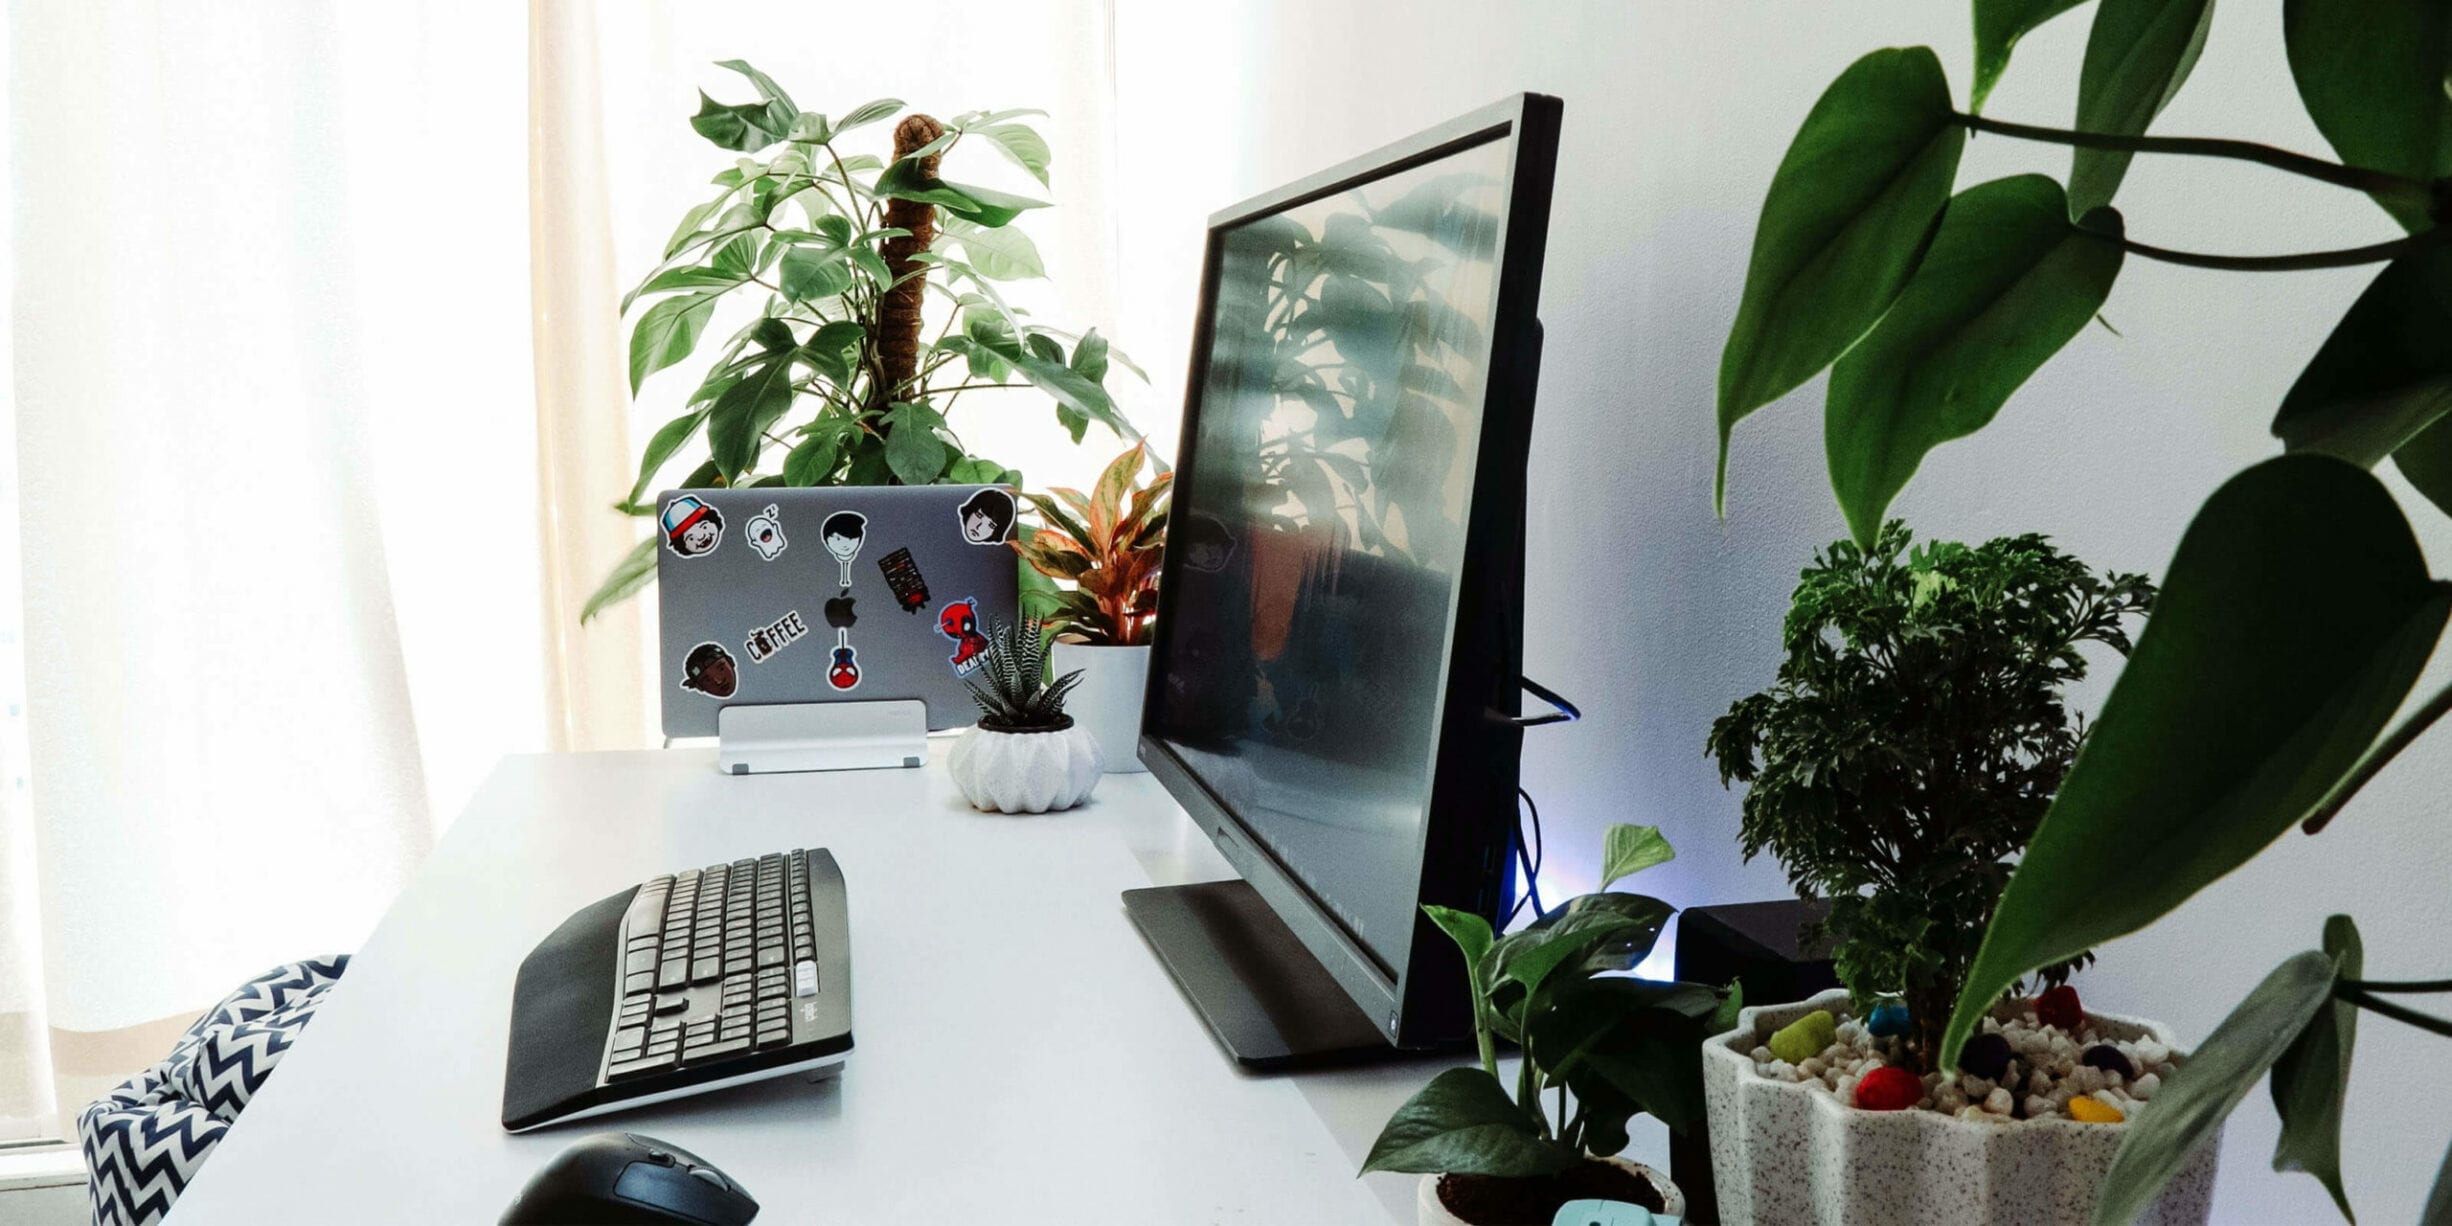 computer on a desk, laptop in a holder surrounded by plants